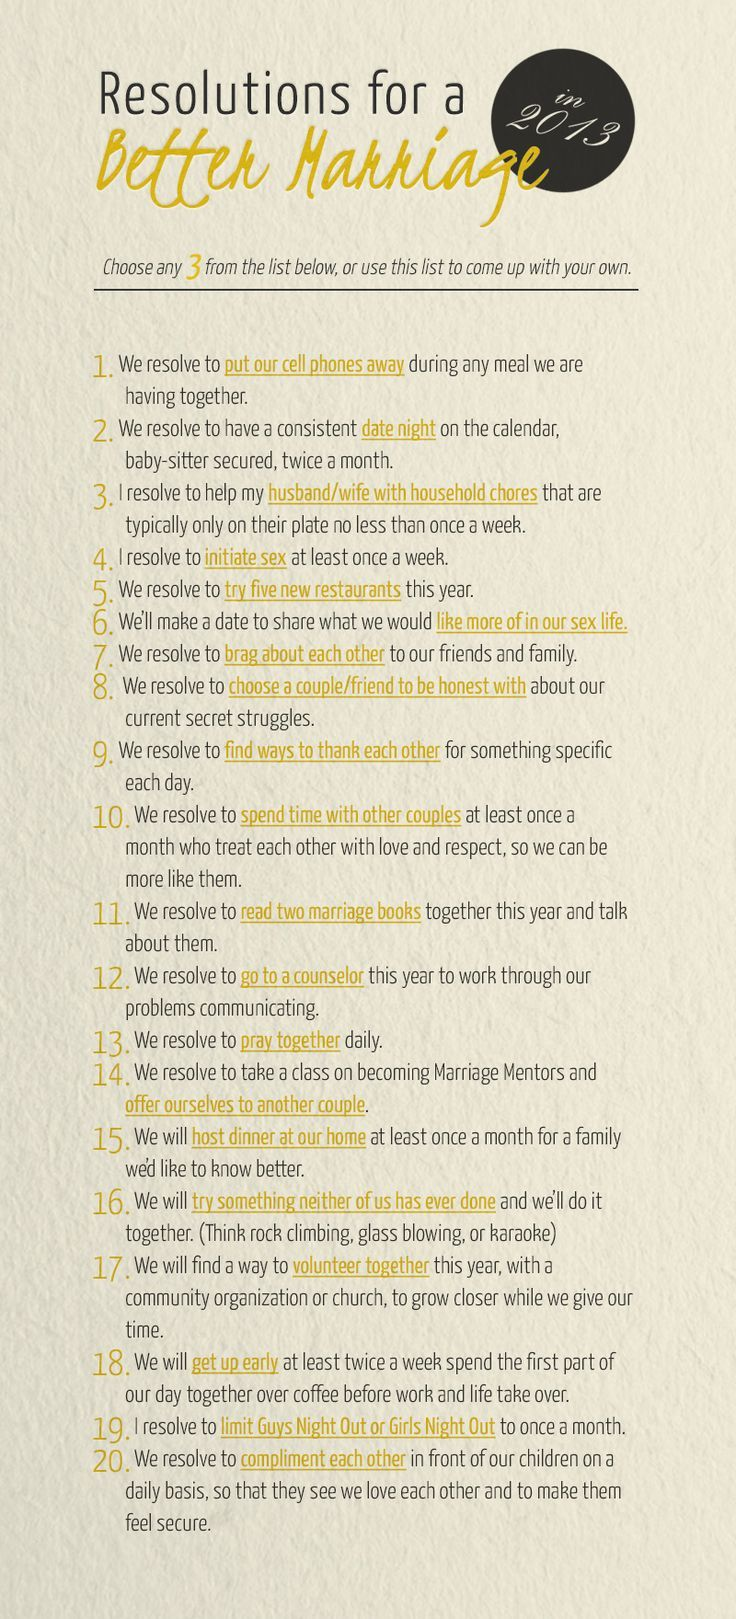 Resolutions for a Better Marriage. Choose any three from this list! #staymarried #marriage #resources